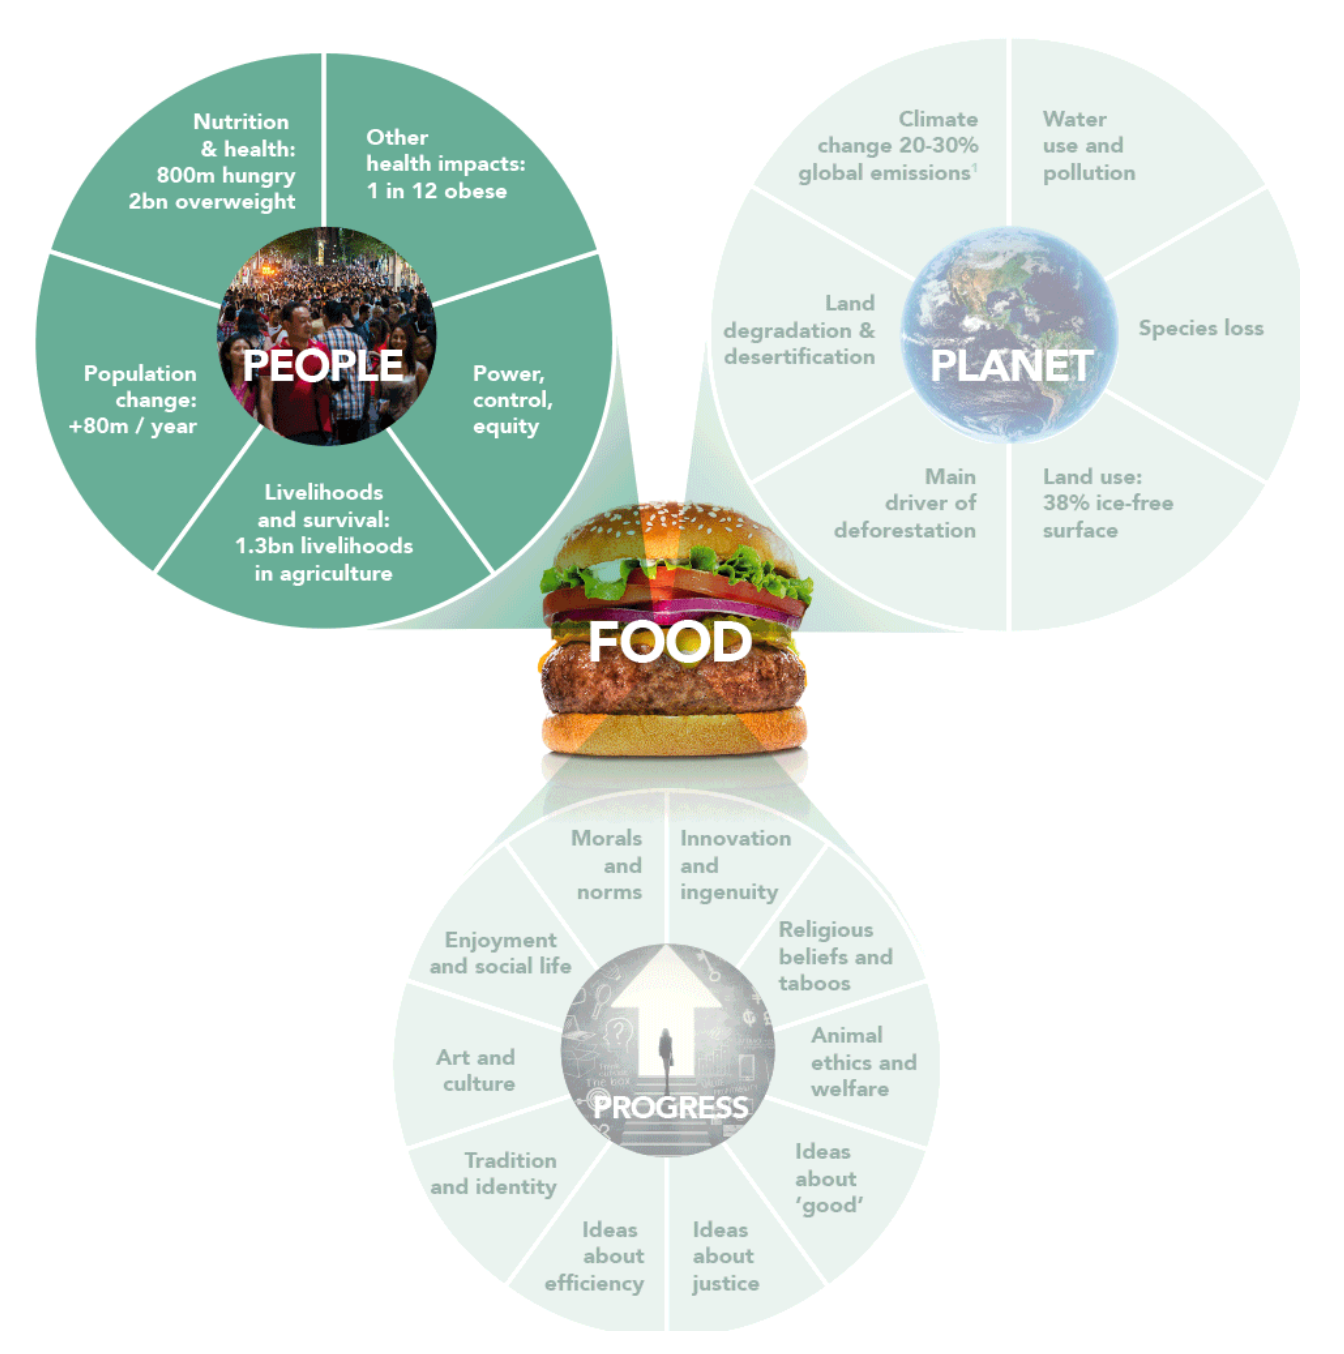 Figure 12: Connection between food systems and human issues.